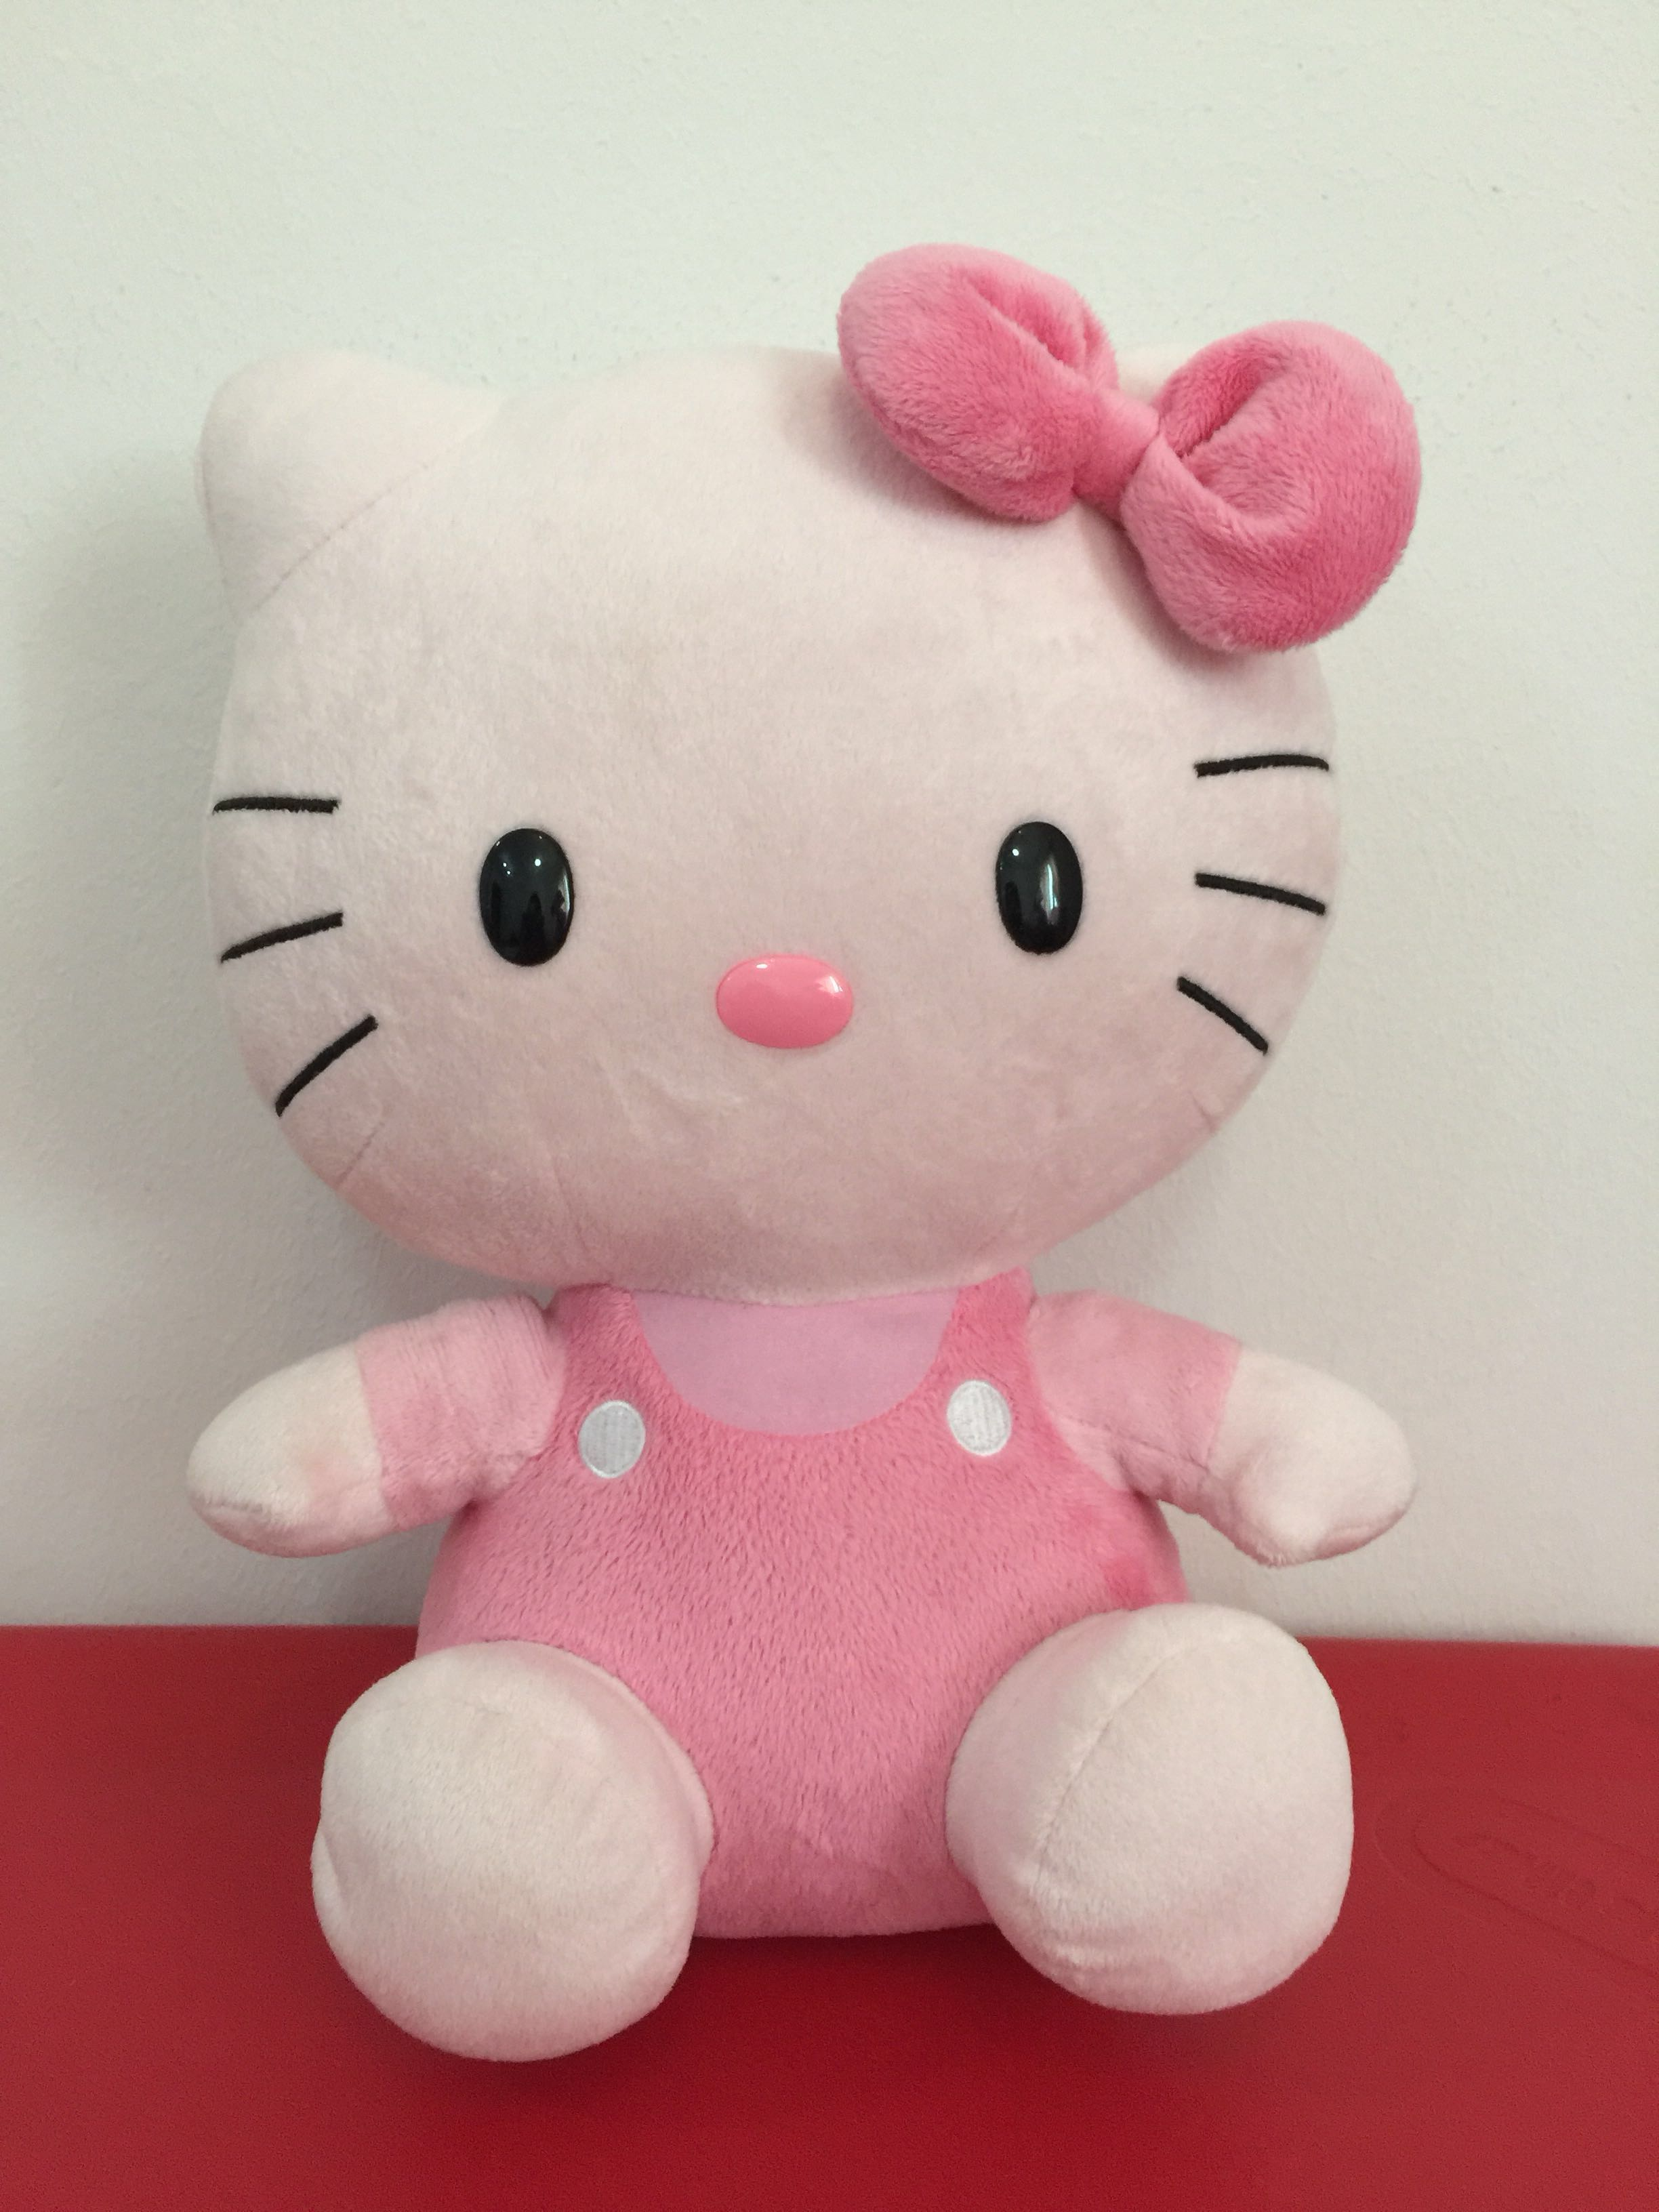 Large Hello Kitty Ty Original Plush Toy, Toys & Games,